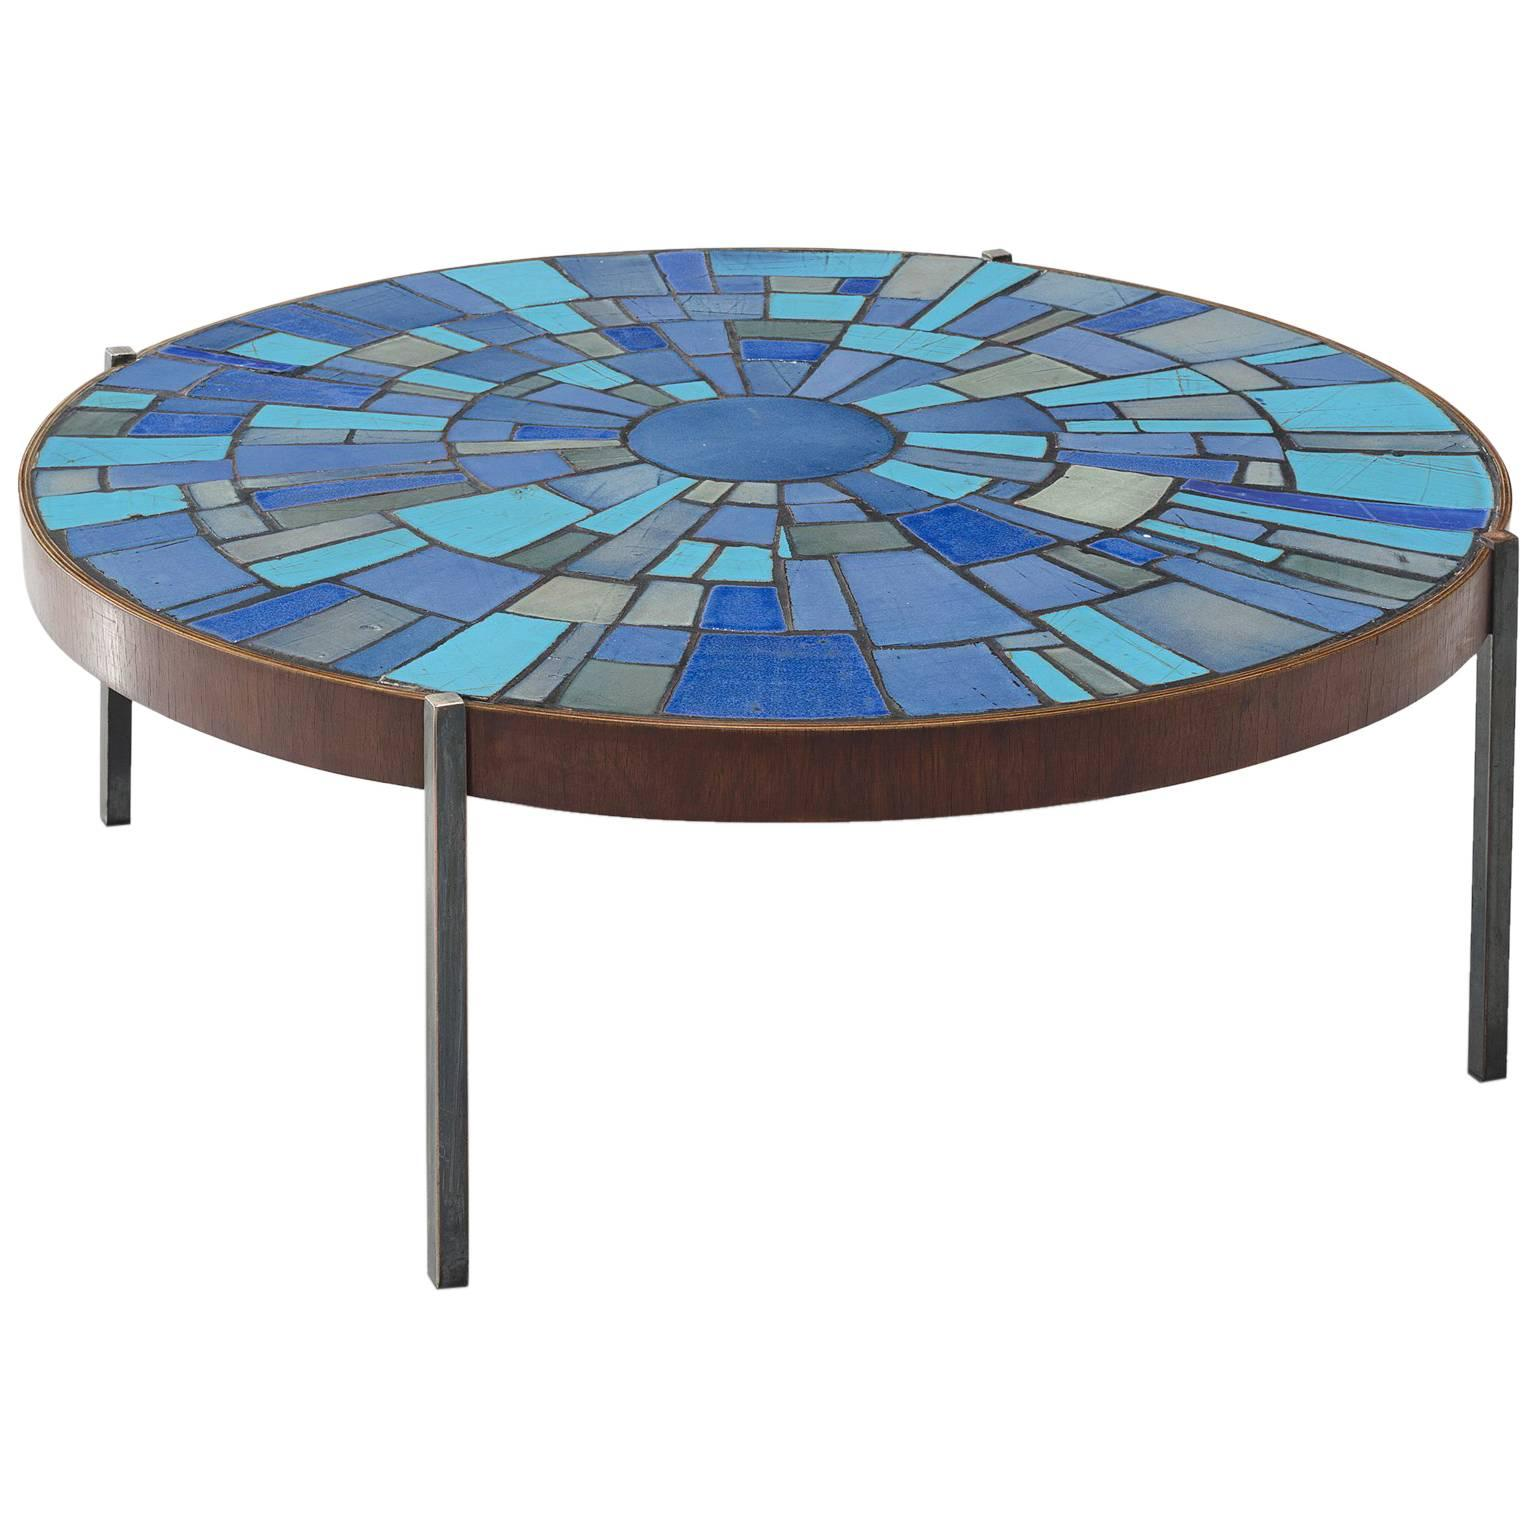 Genial Rogier Vandeweghe For Amphora Mosaic Coffee Table